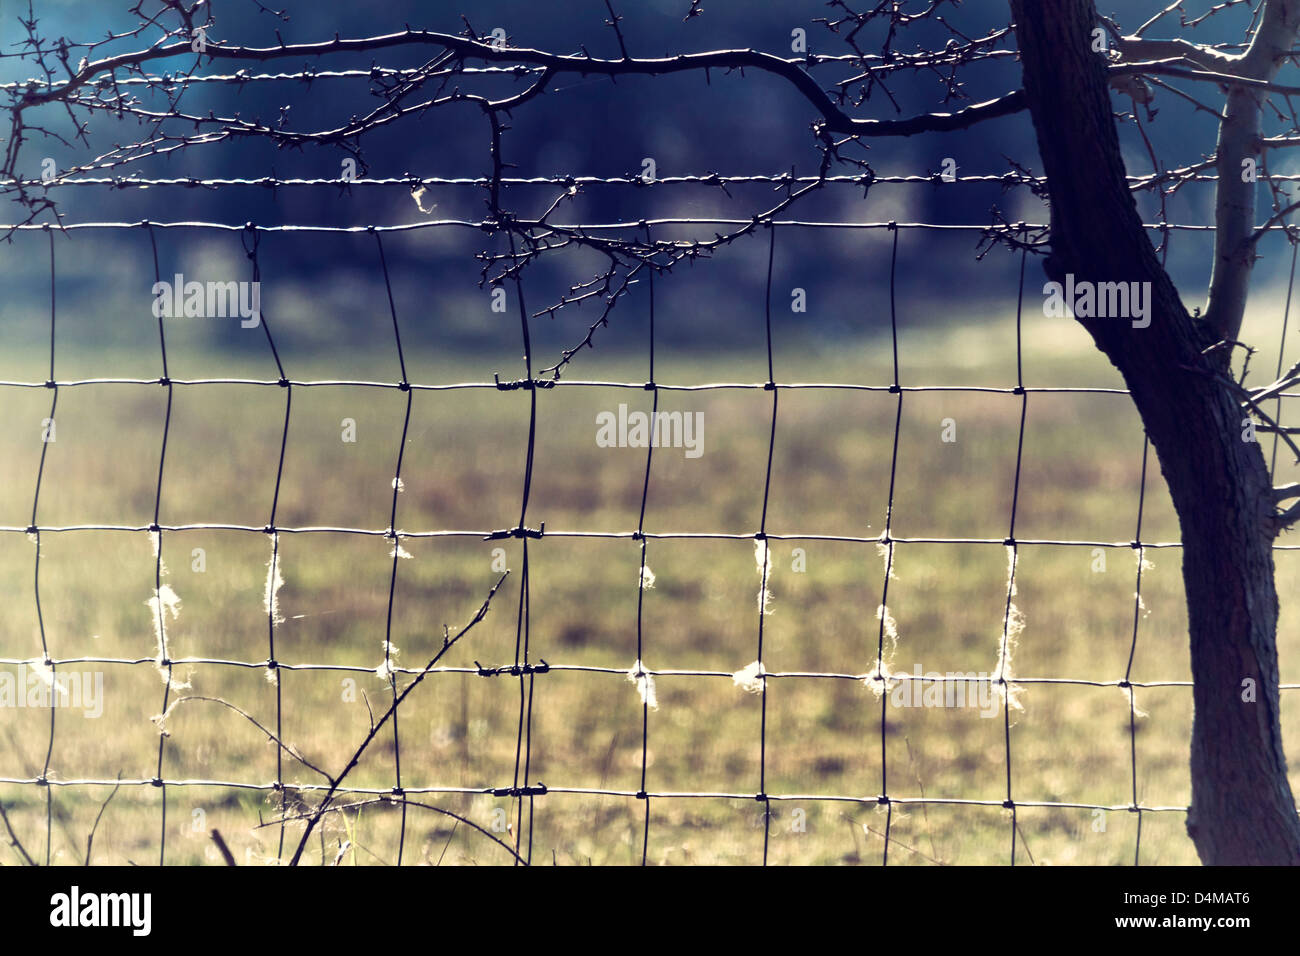 Square Wire Fence | Square Hole Wire Fence With Wool On It A Small Tree To The Right And